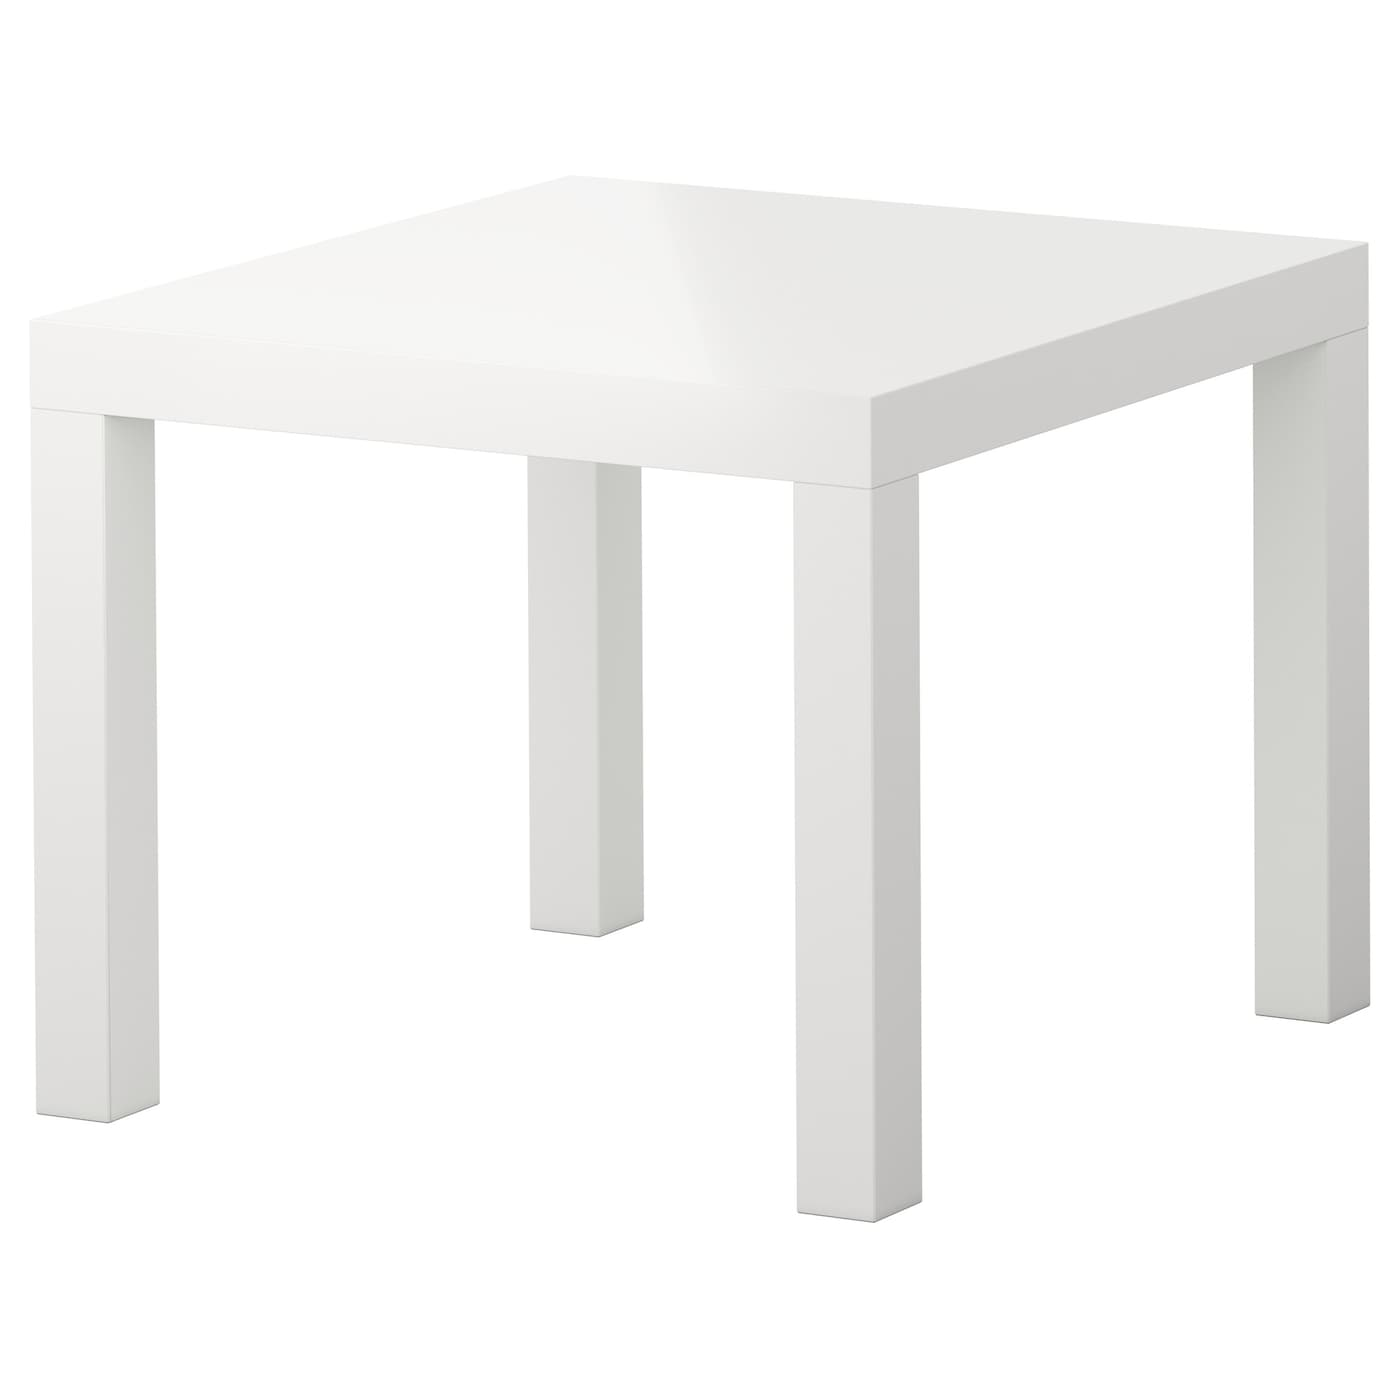 Lack side table high gloss white 55x55 cm ikea for Table en pin ikea